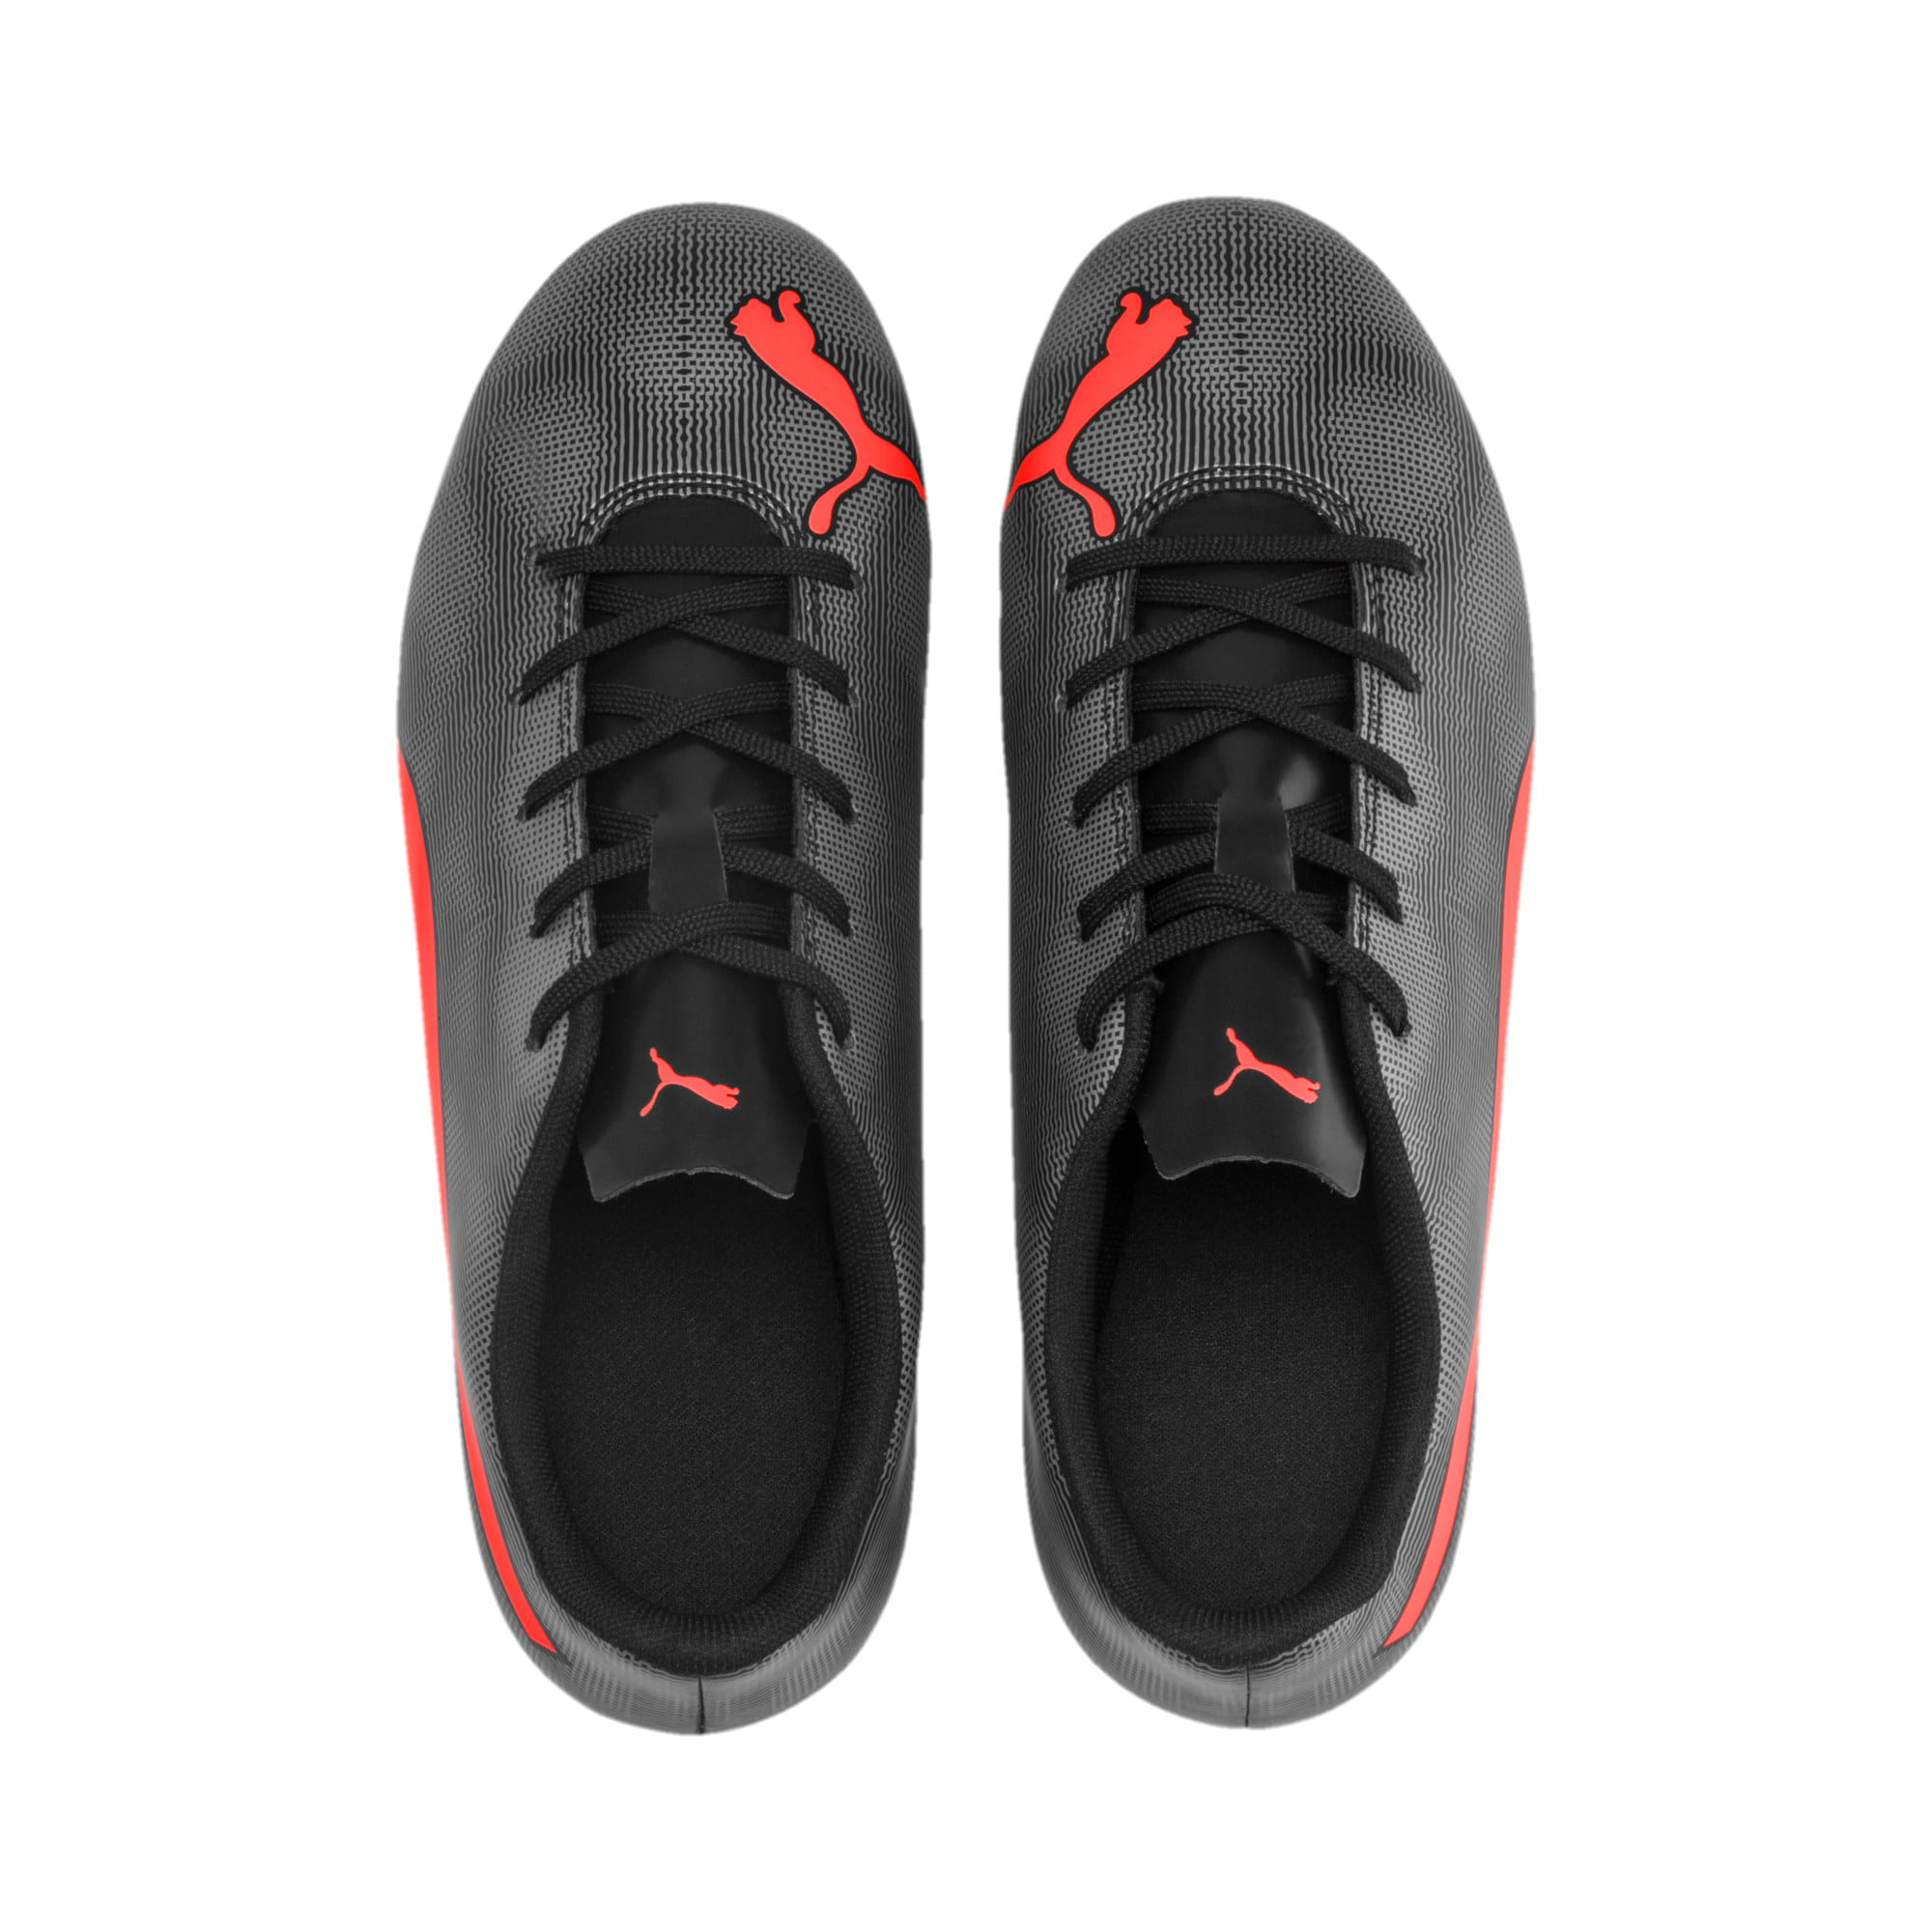 Thumbnail 6 of Rapido FG Youth Football Boots, Black-Nrgy Red-Aged Silver, medium-IND